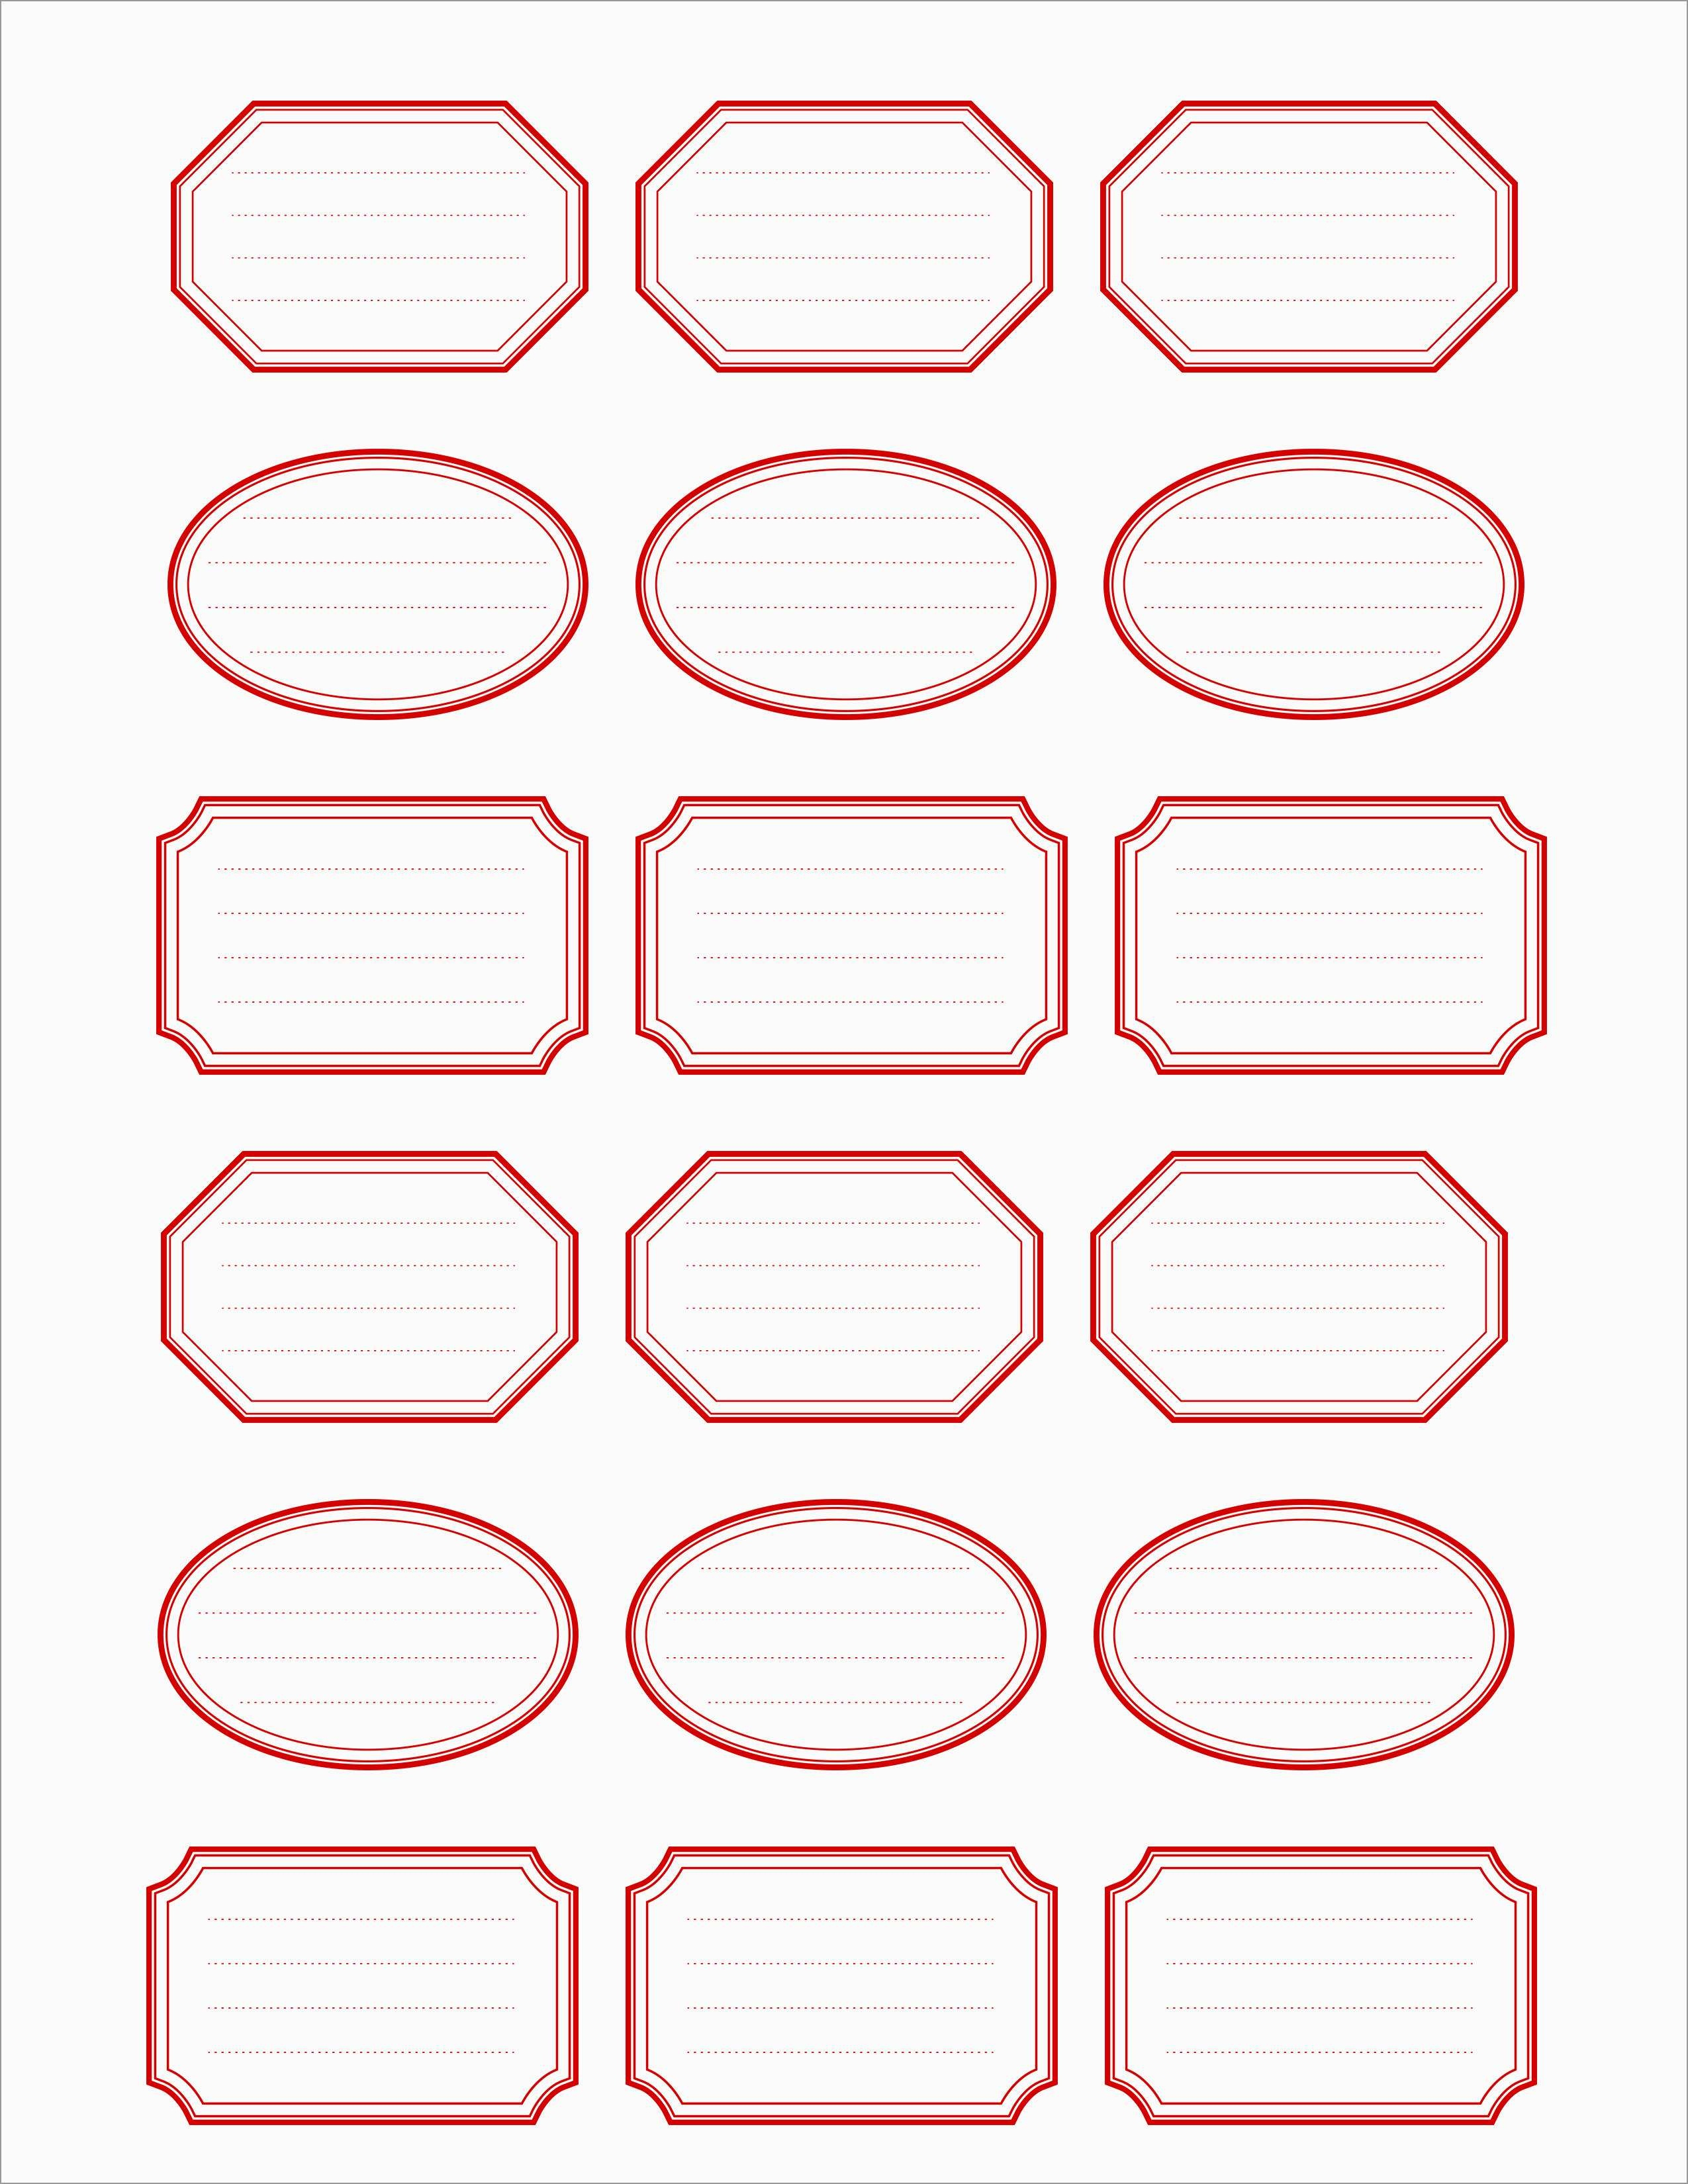 Best Of Free Printable Shipping Label Template | Best Of Template - Free Printable Label Templates